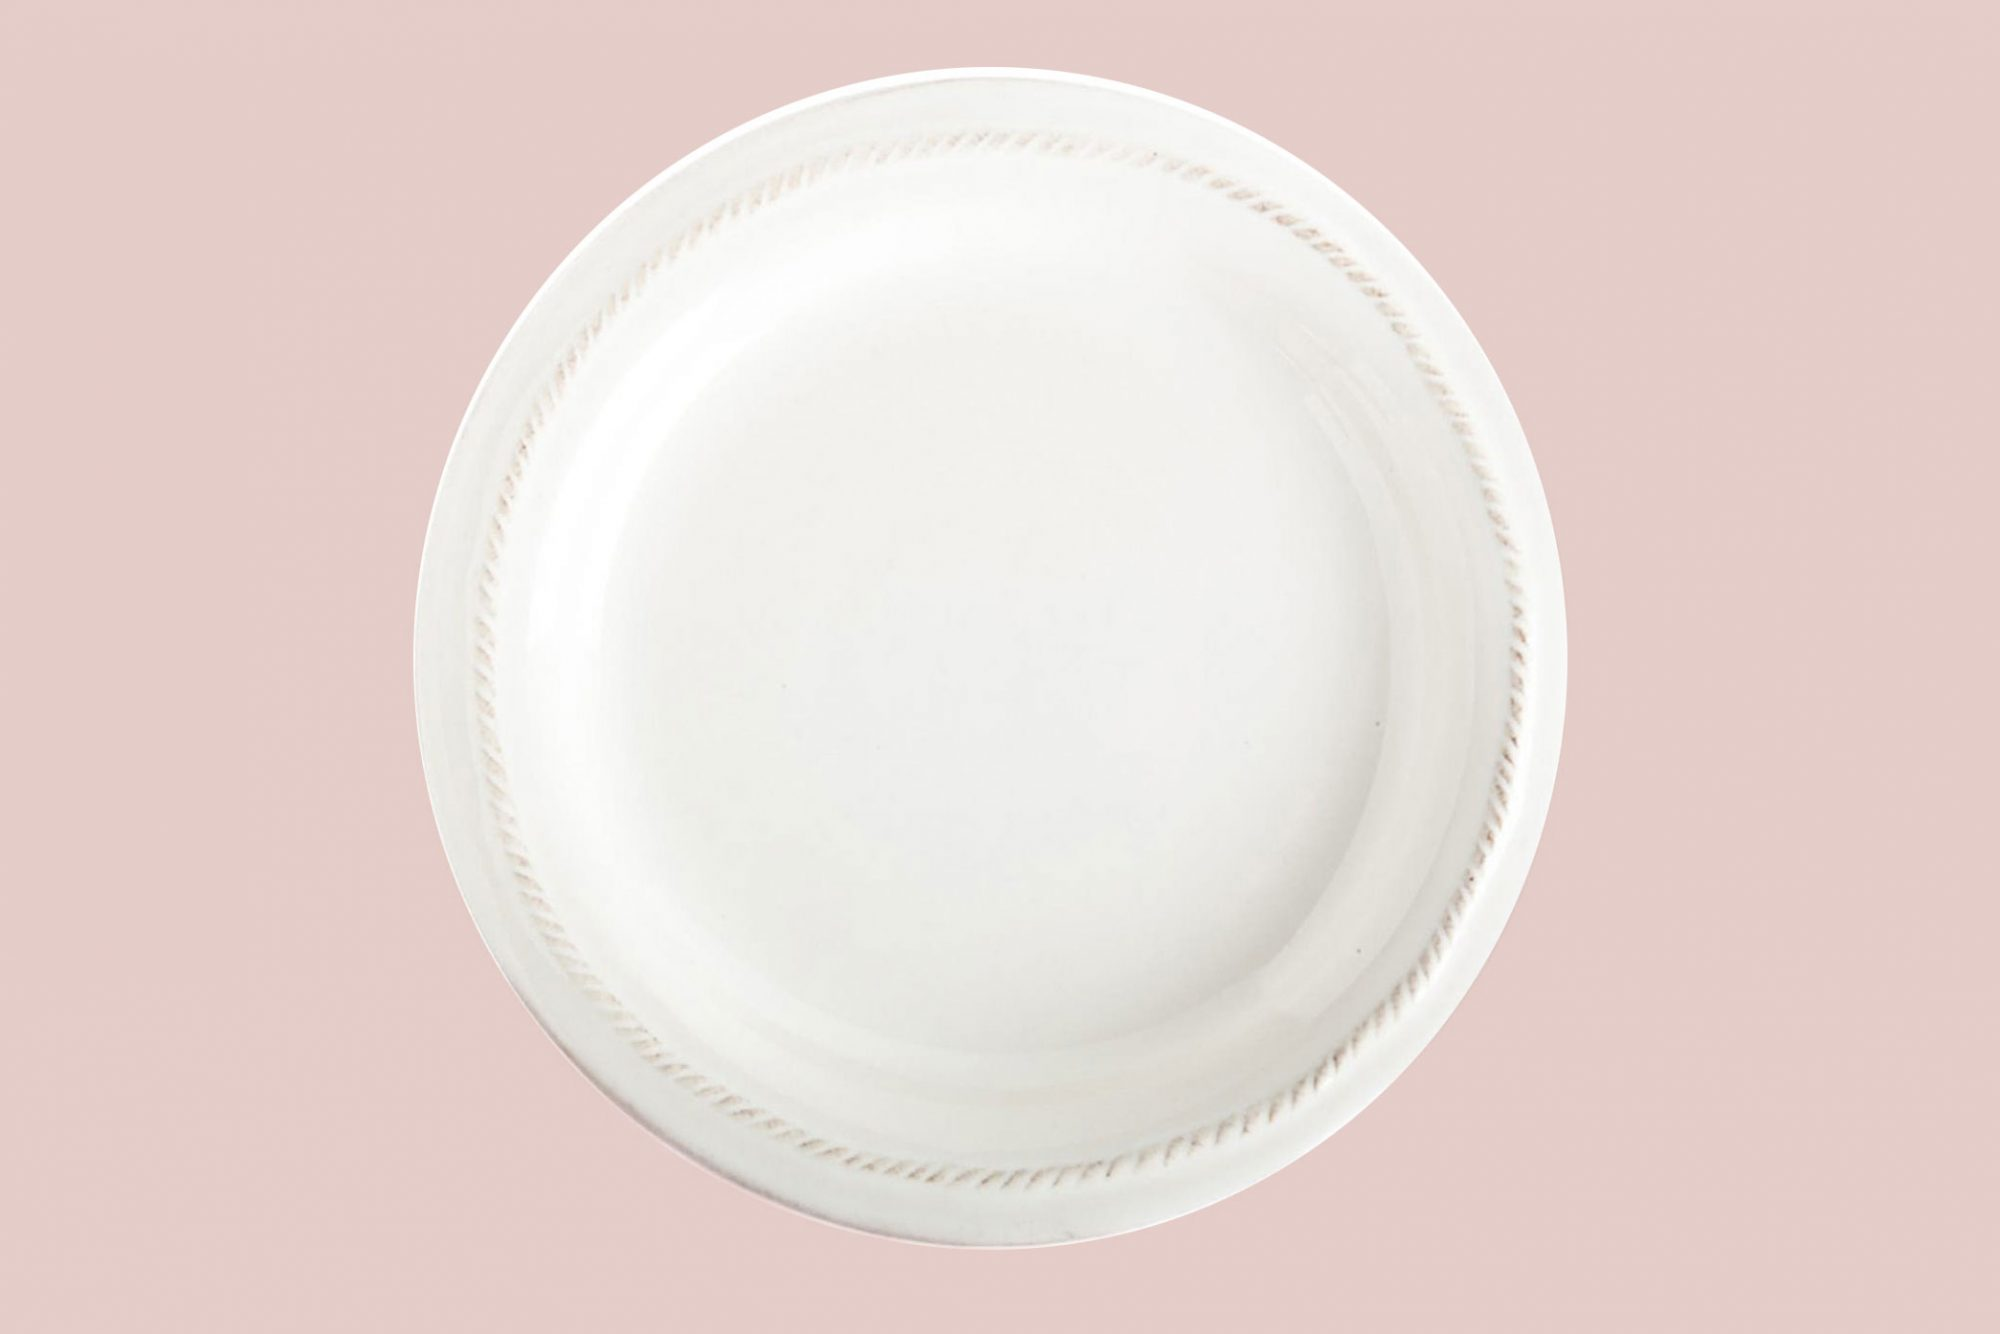 threaded white plate